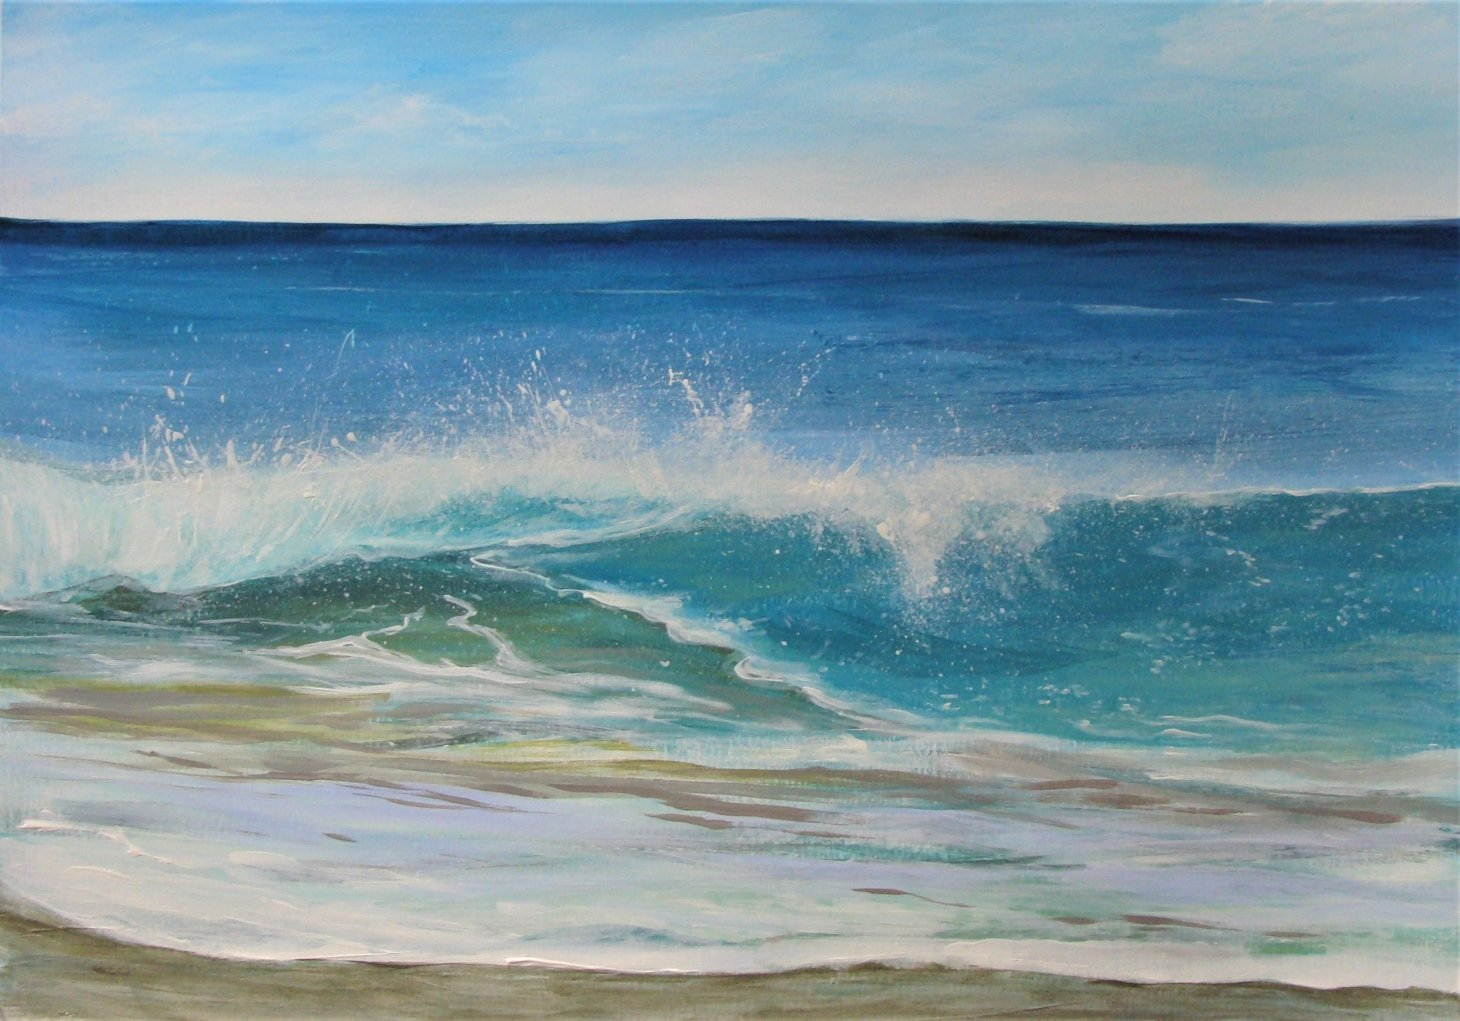 Buy Cornish Art Kerry Bletso Wave Watching Primary.jpg